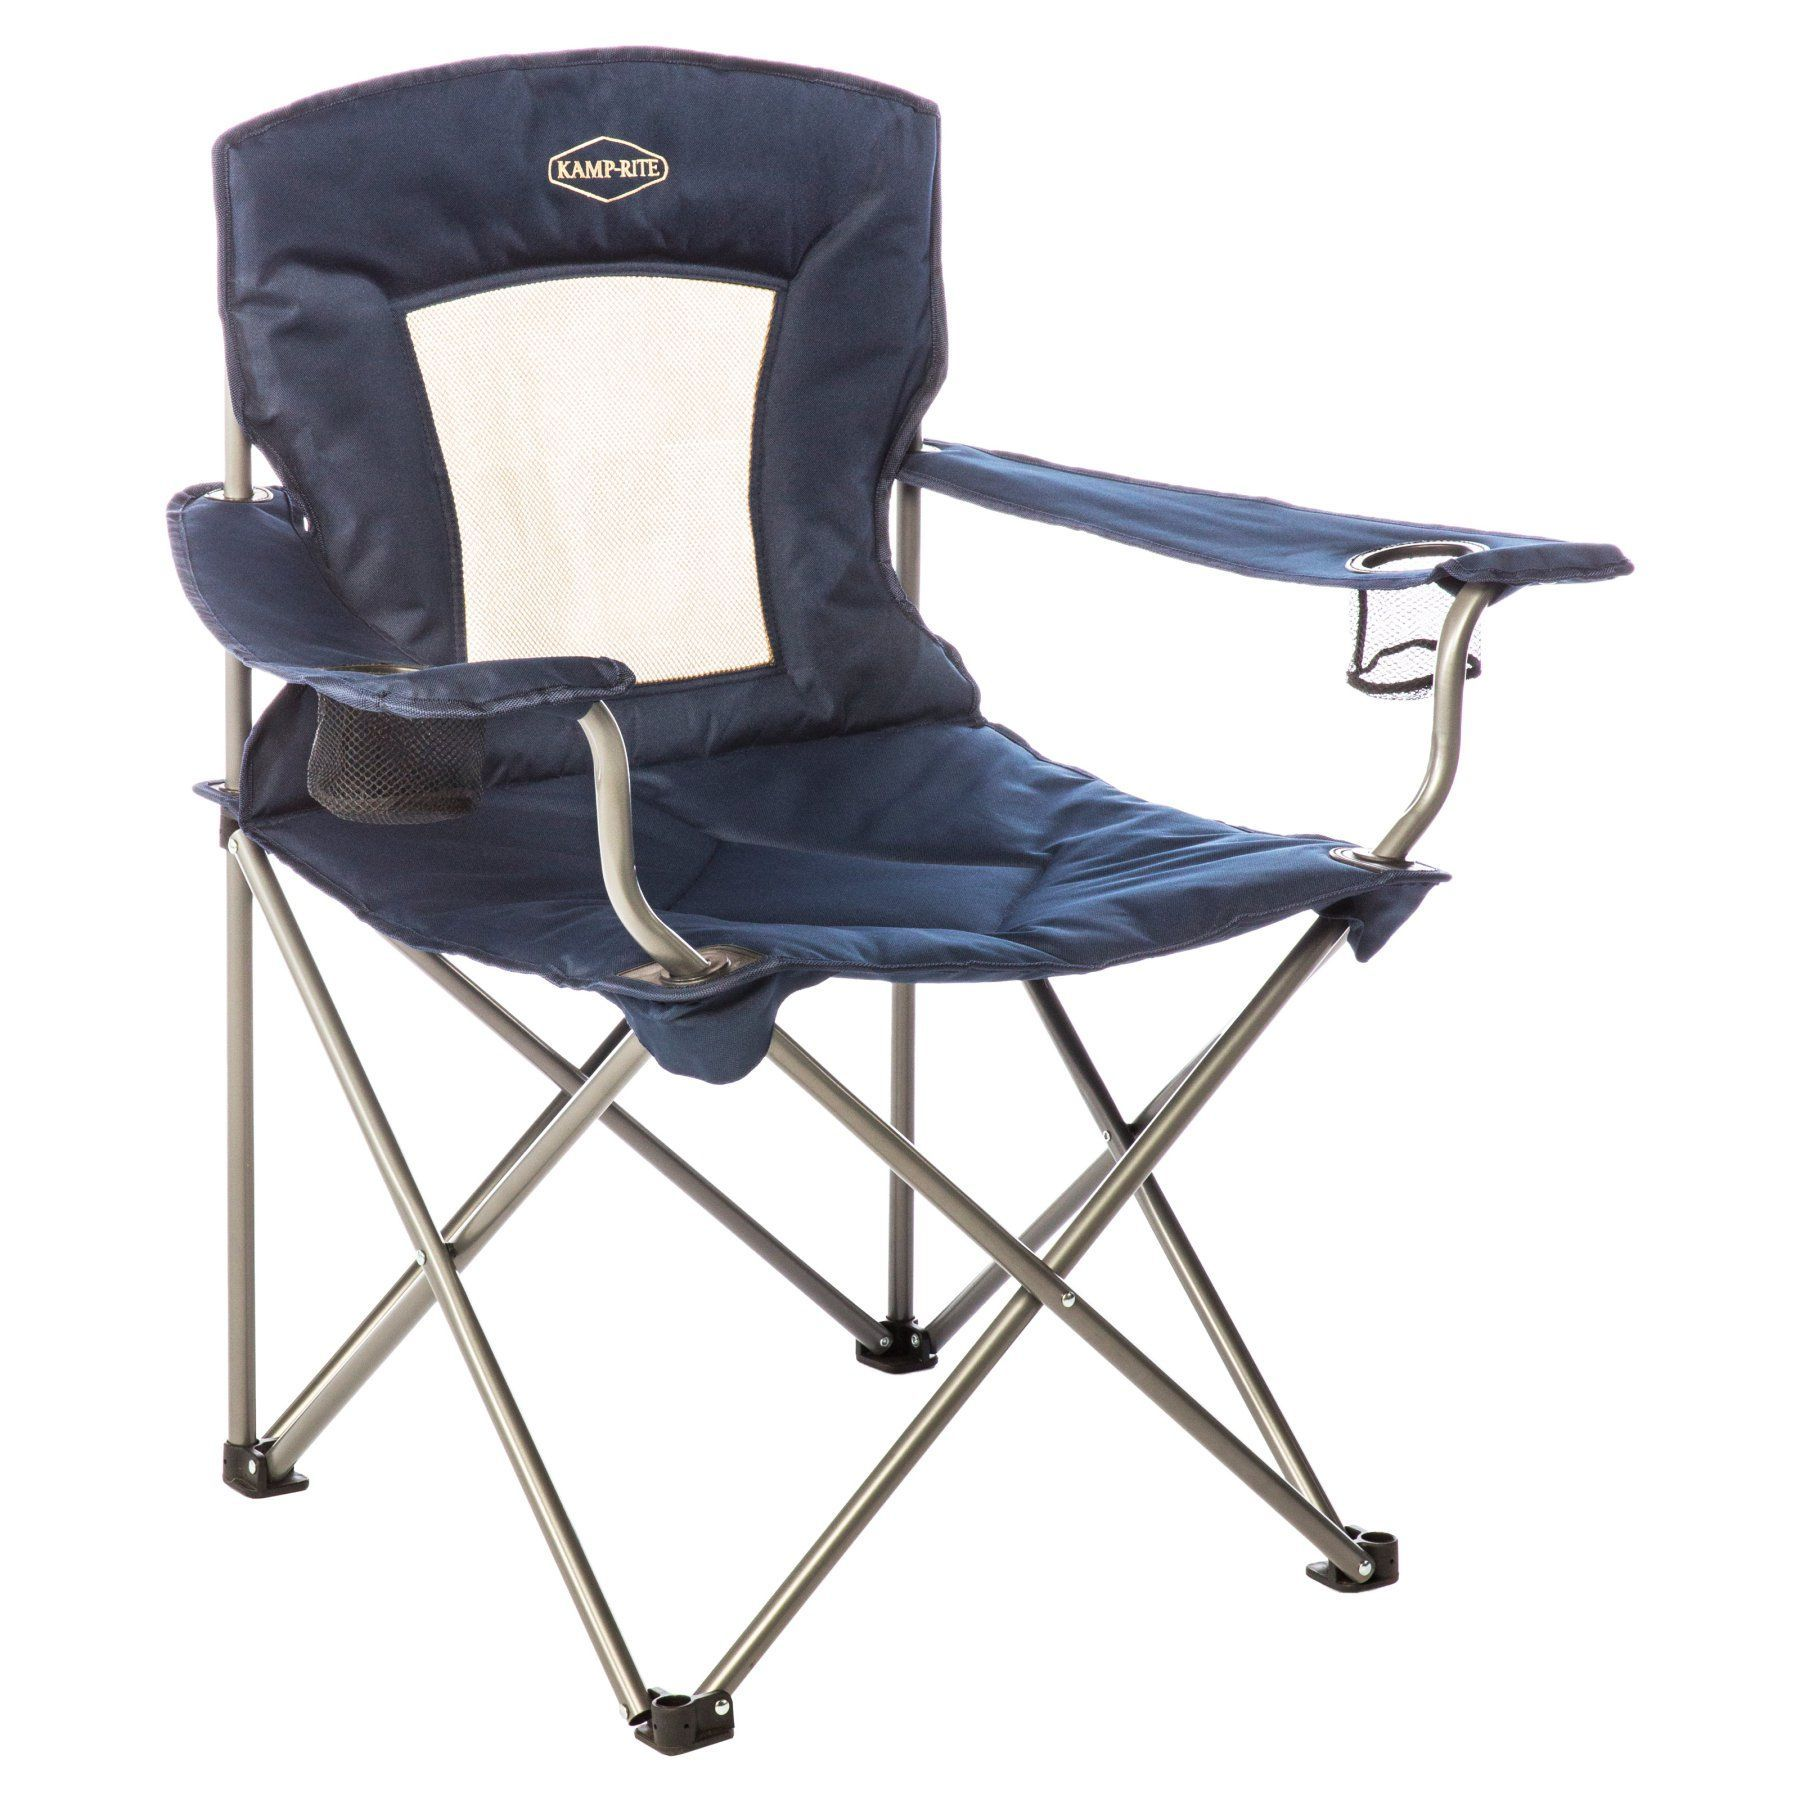 Outstanding Outdoor Kamp Rite Padded Folding Lawn Chair With Mesh Back Cjindustries Chair Design For Home Cjindustriesco